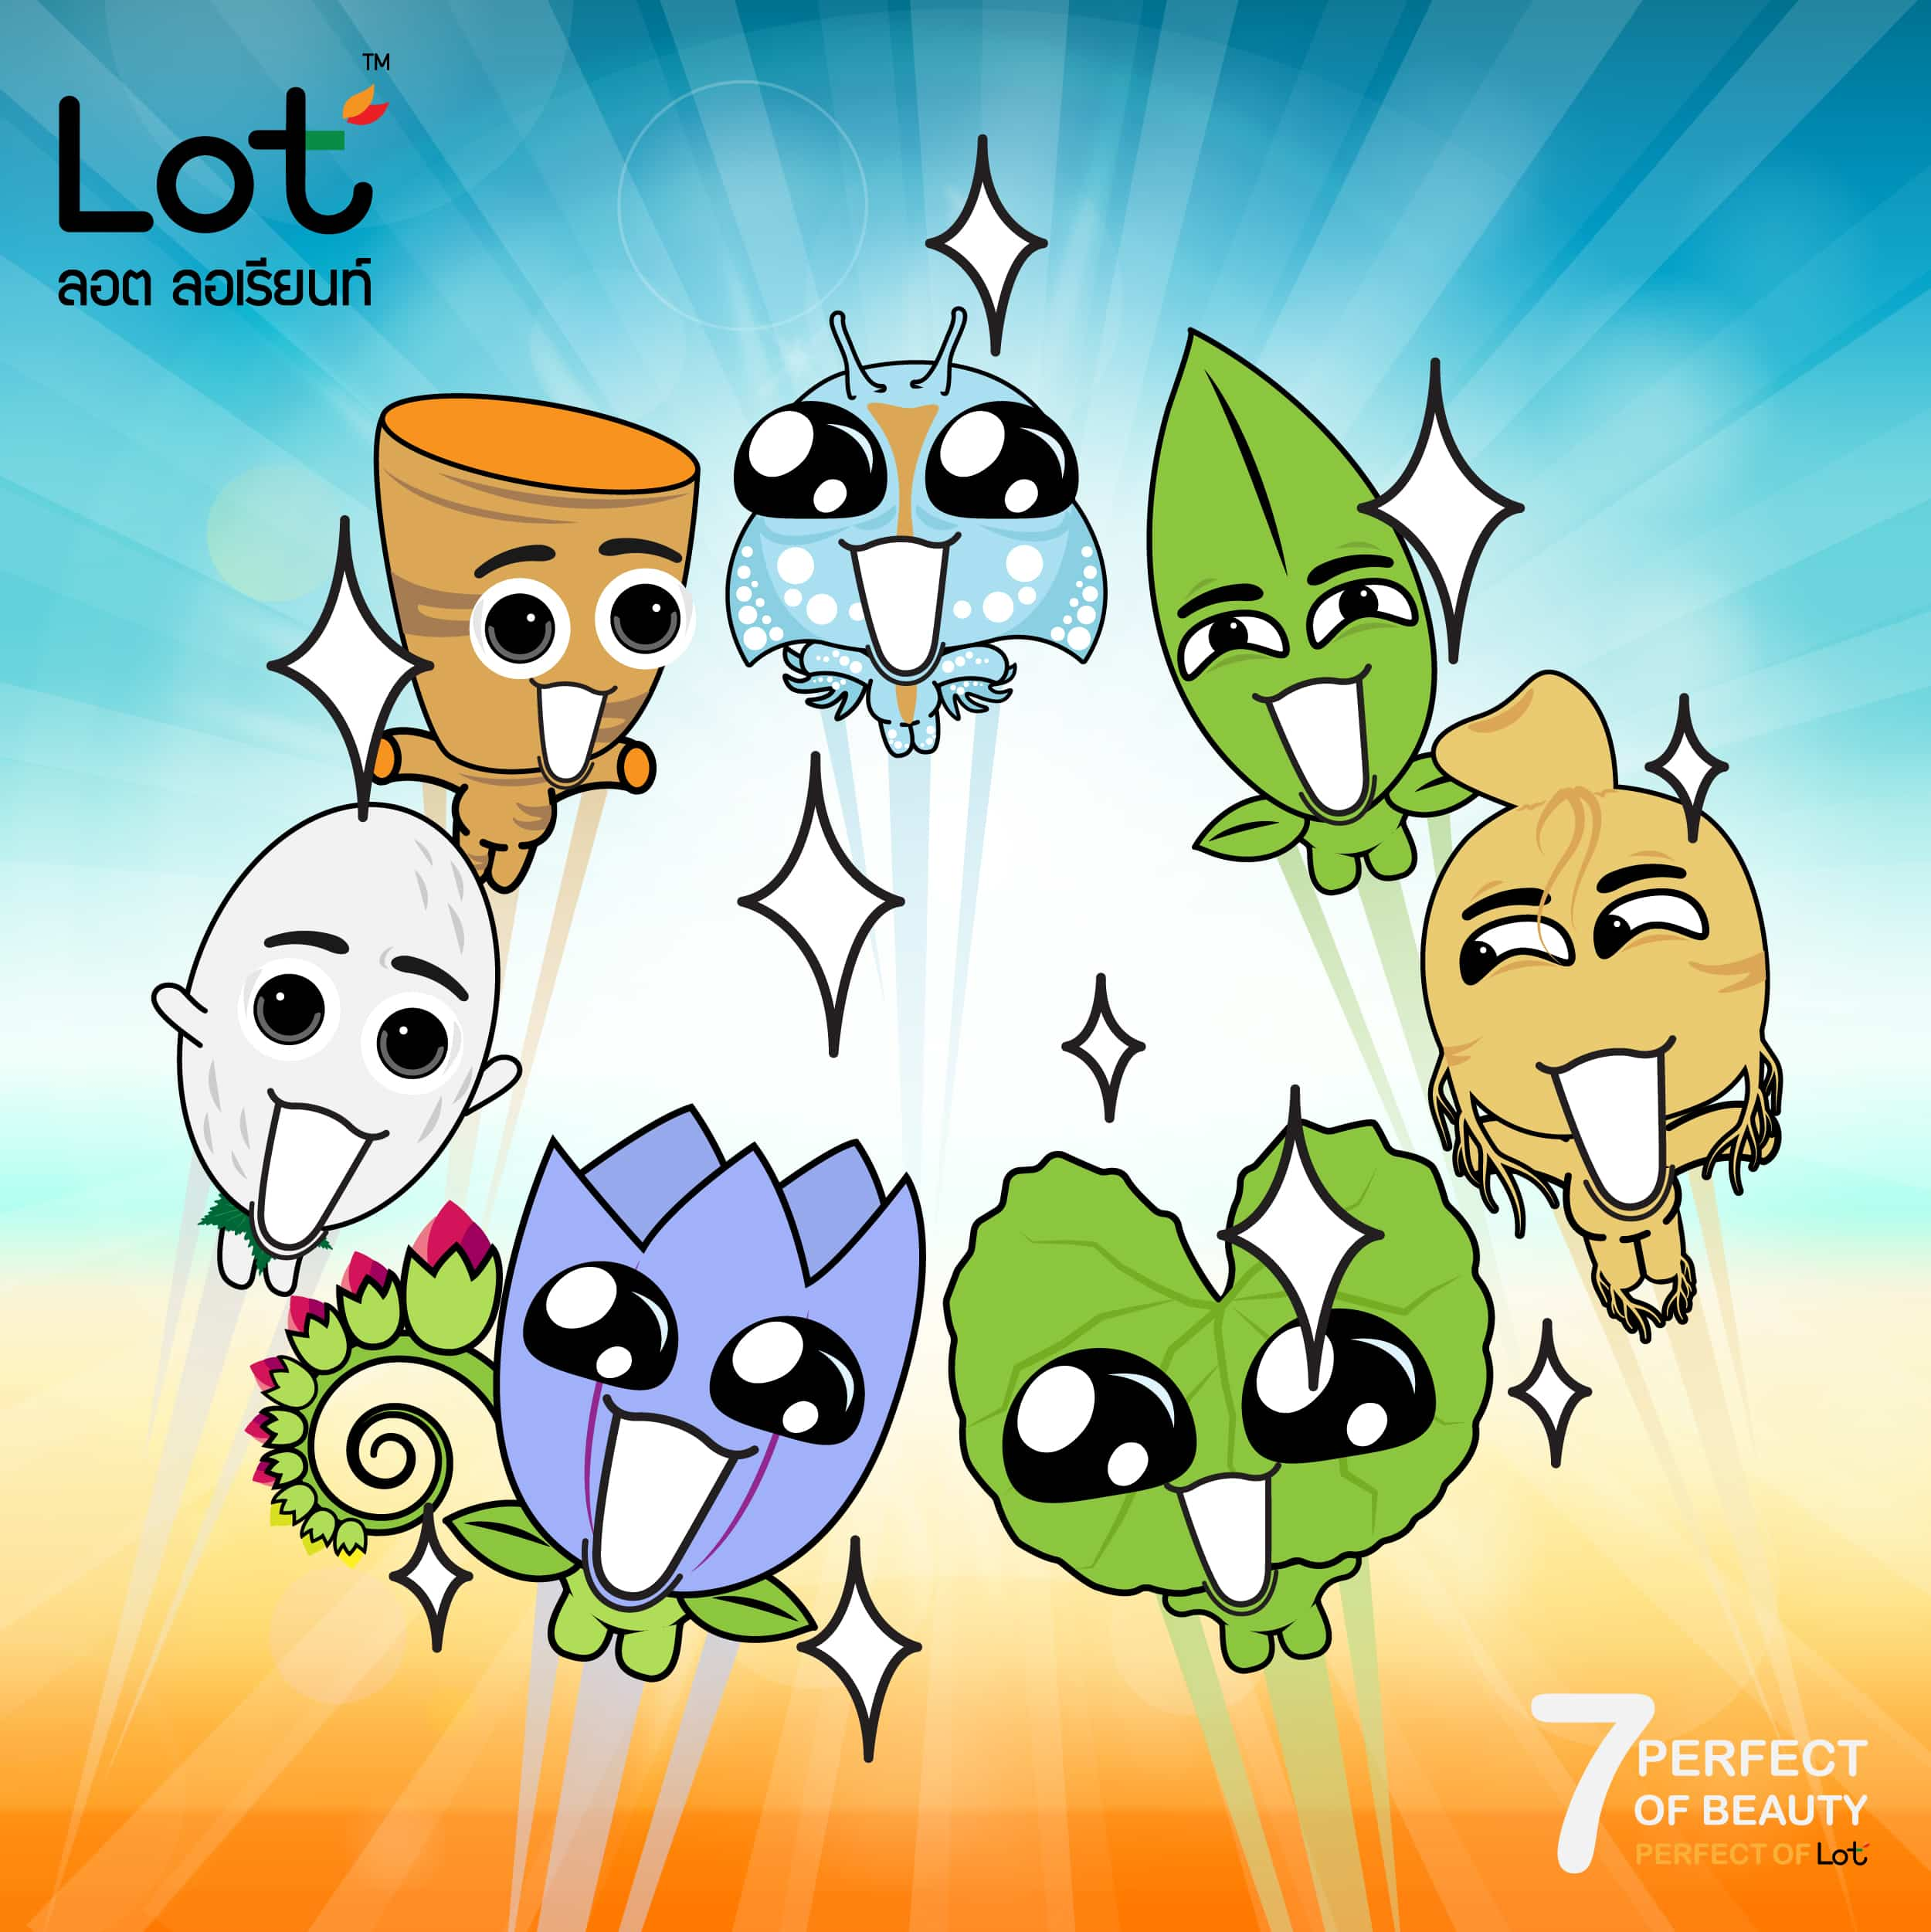 7 perfect of LOT : the story